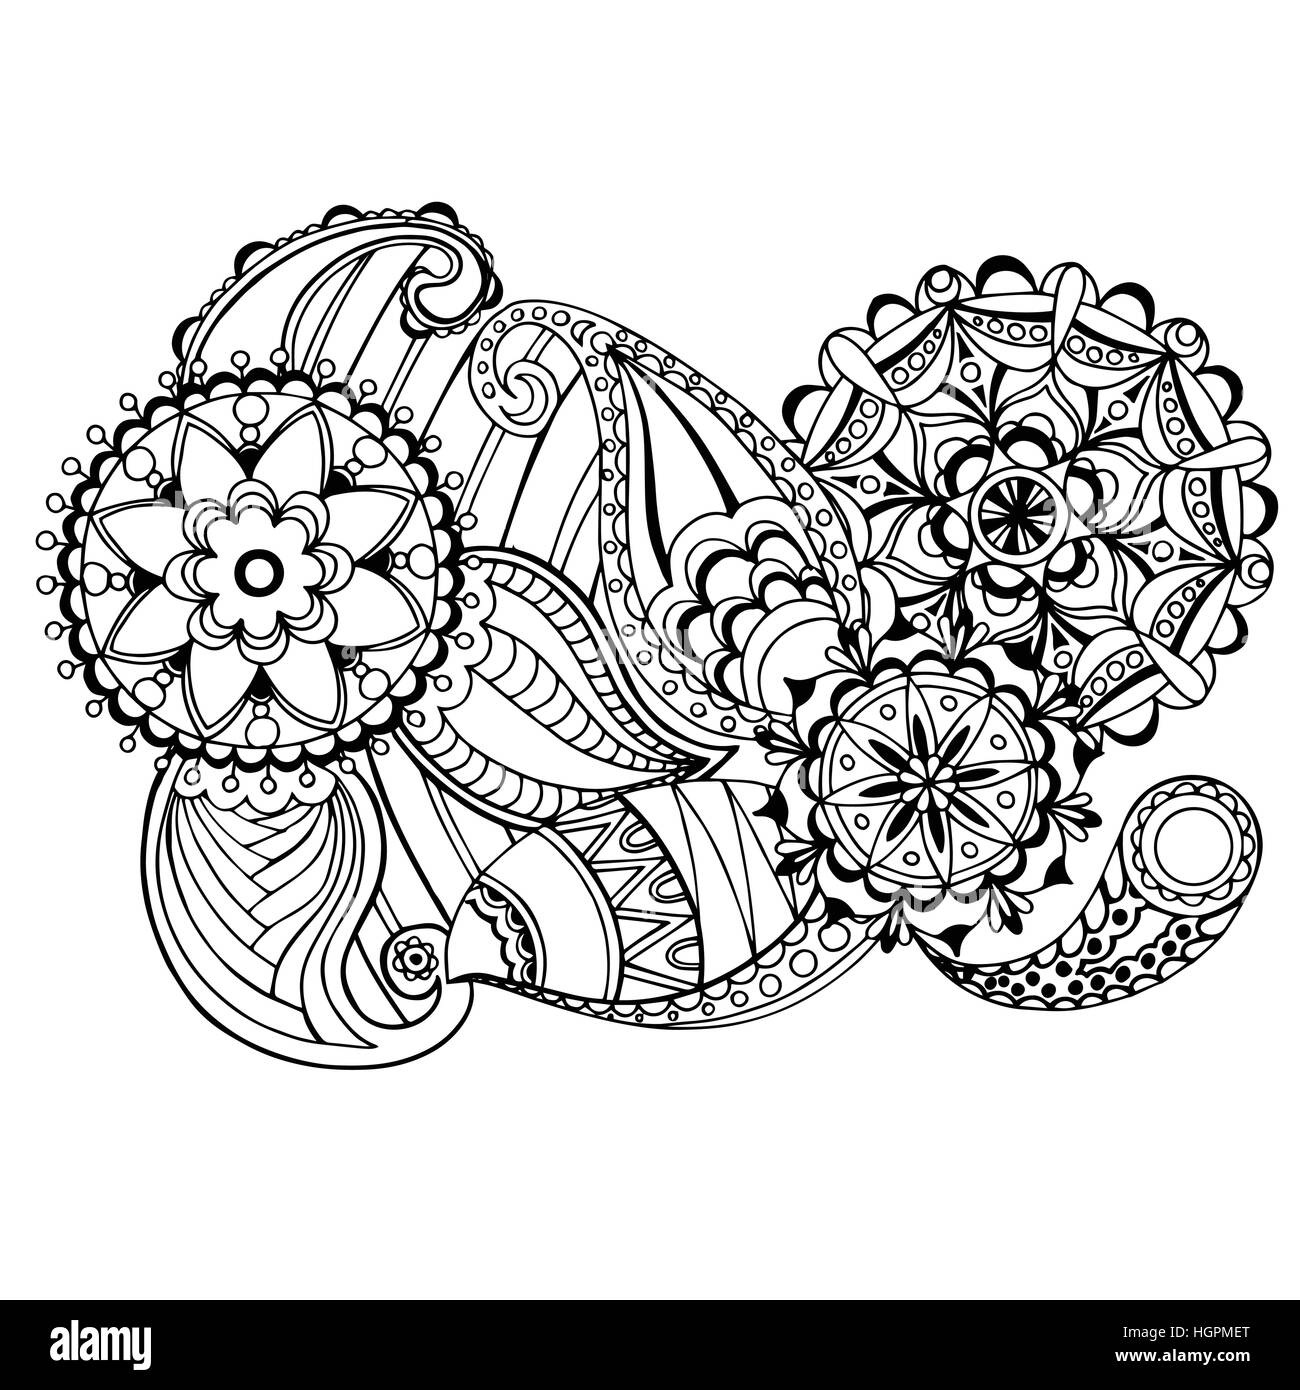 Page For Coloring Book Very Interesting And Relaxing Job Children Adults Hand Drawn Doodle Antistress Zentangle Design Sketch Colouring